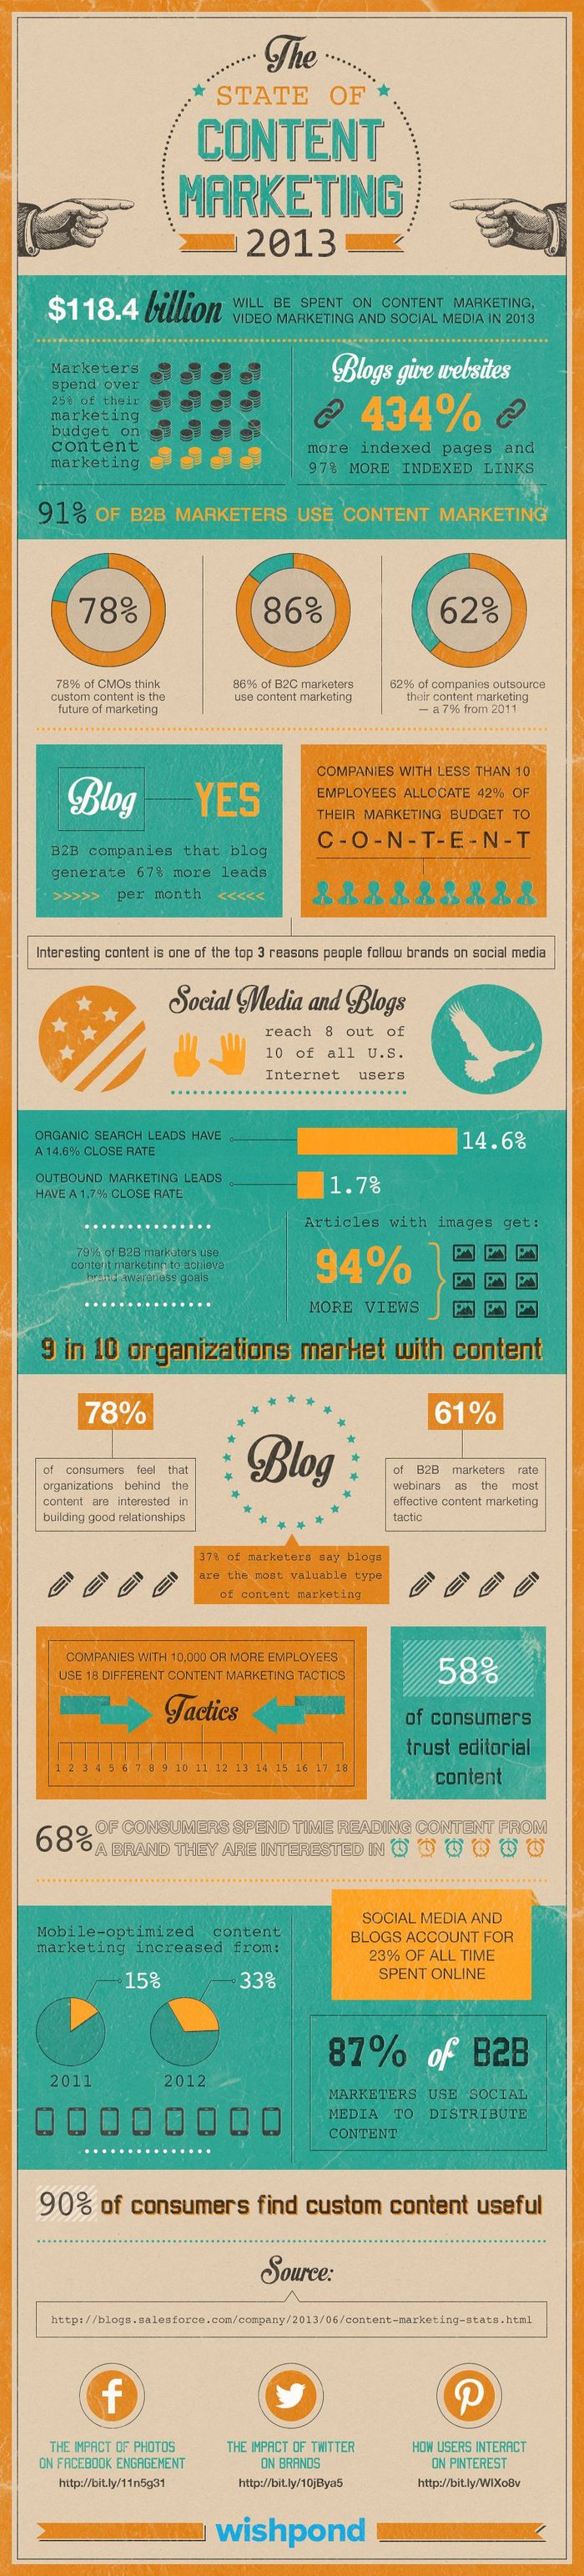 Infographic_content_marketing_2013